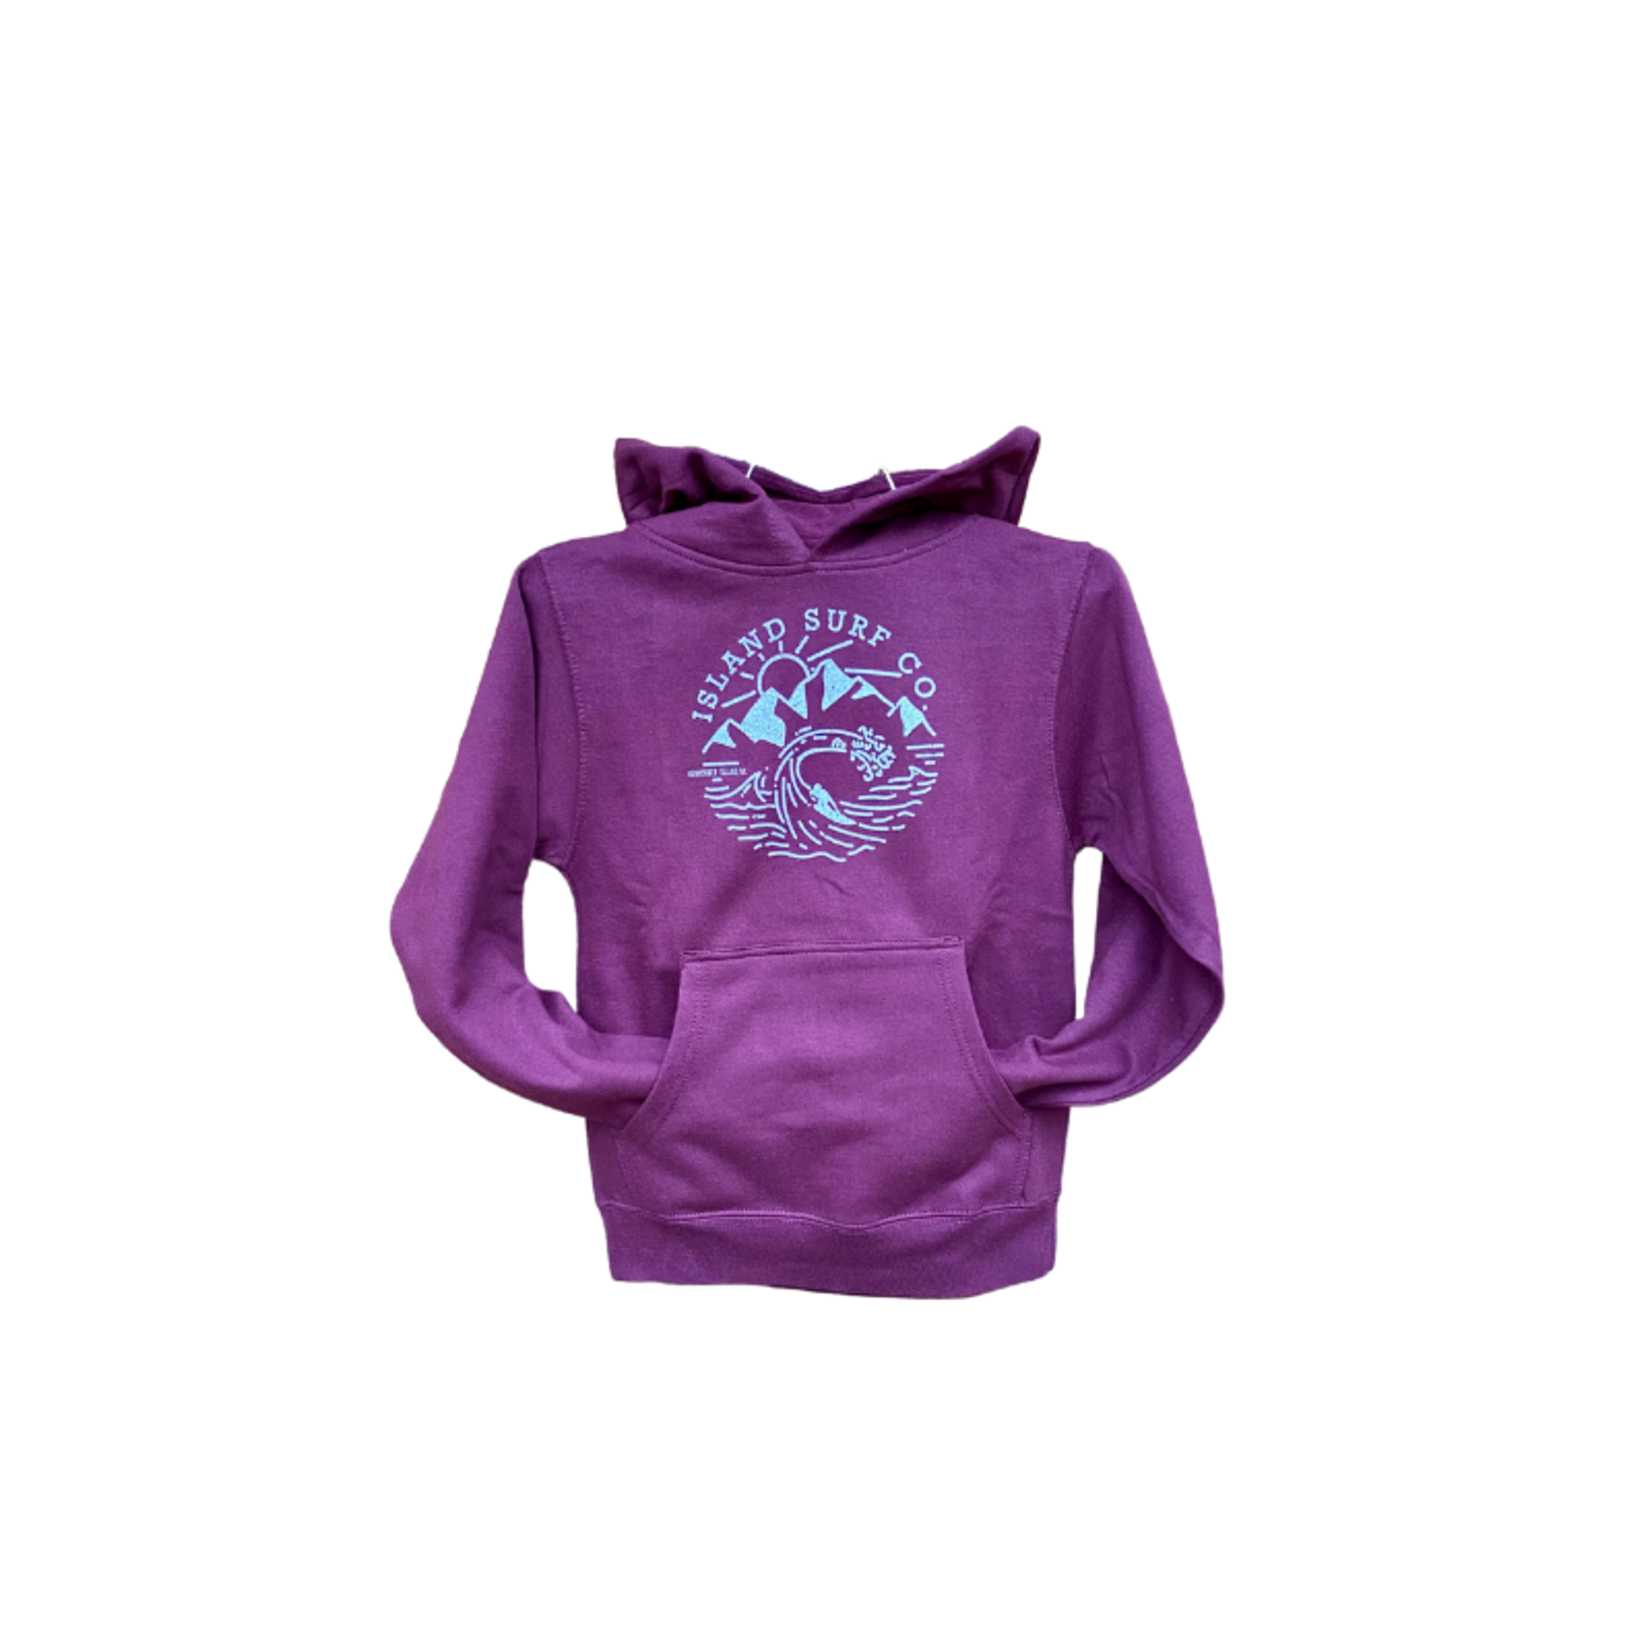 Island Surf Company West Coast Youth Hoody.